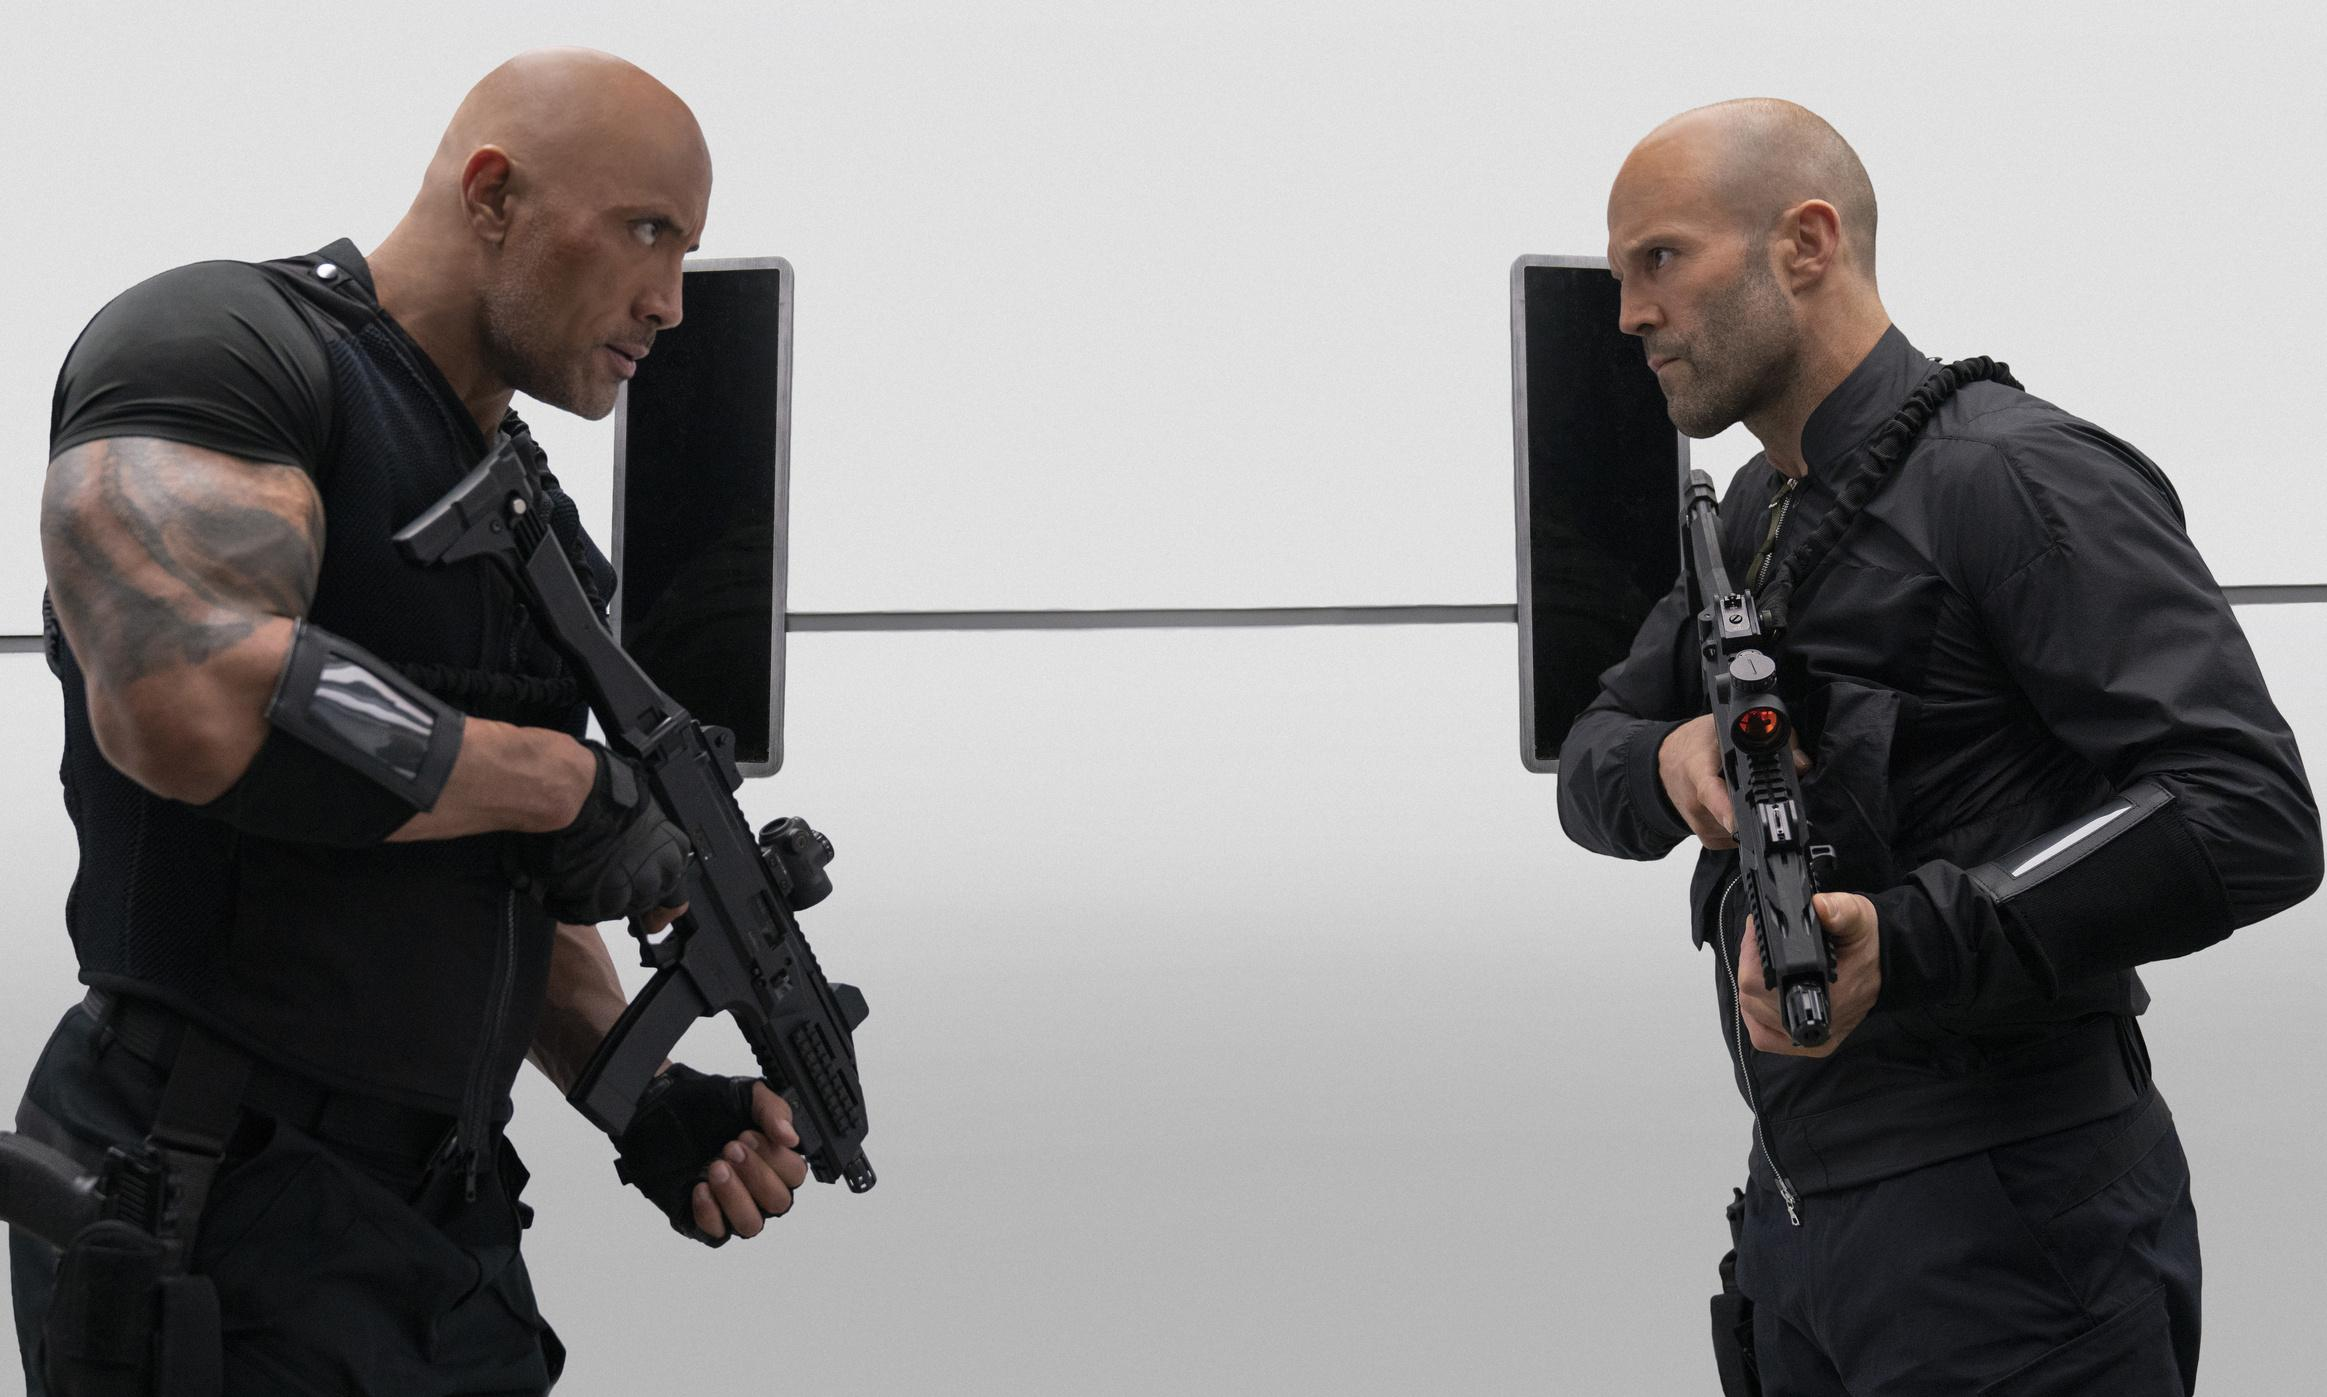 Jason Statham and The Rock 'refuse to lose fights against one another'